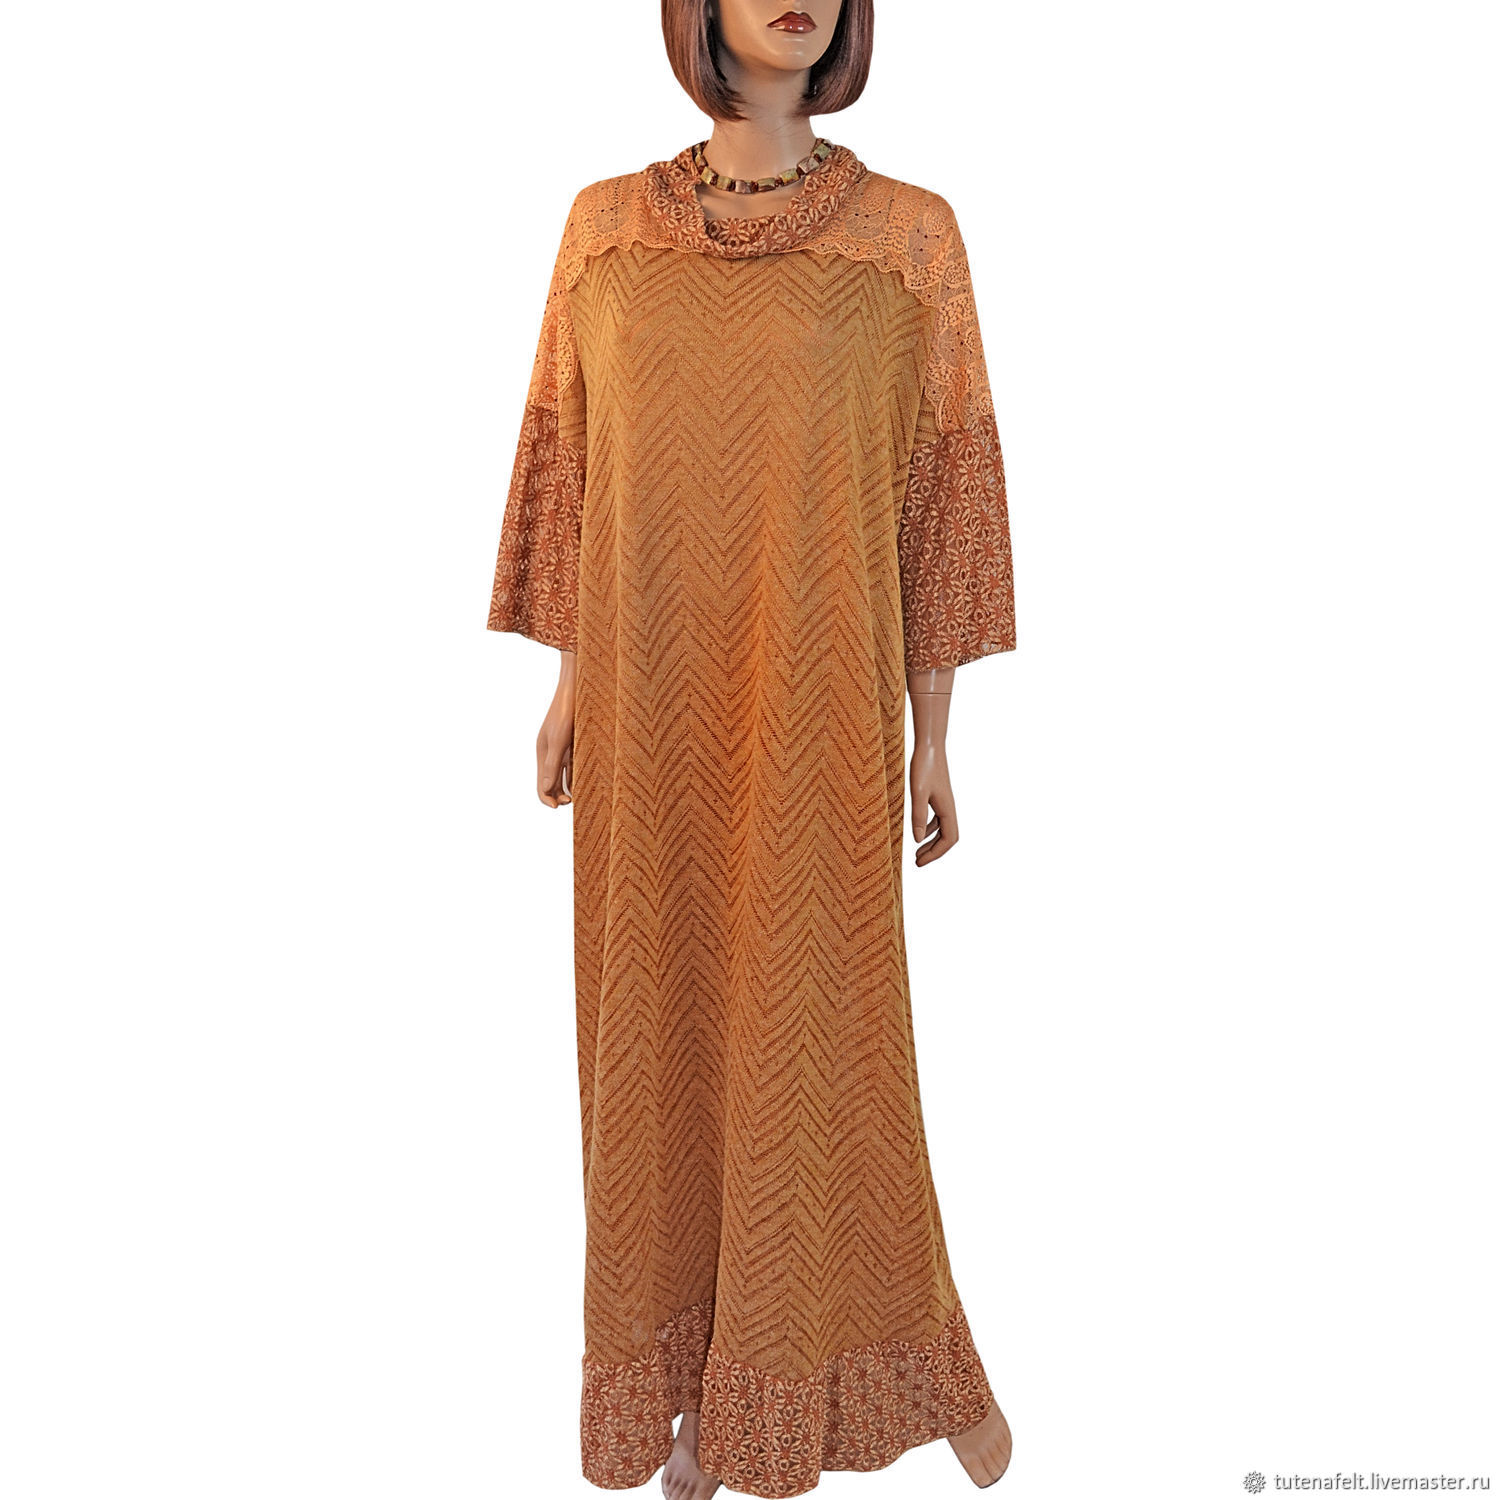 Elegant light dress made of knitwear and guipure ' Gold 2', Dresses, Mulhouse,  Фото №1